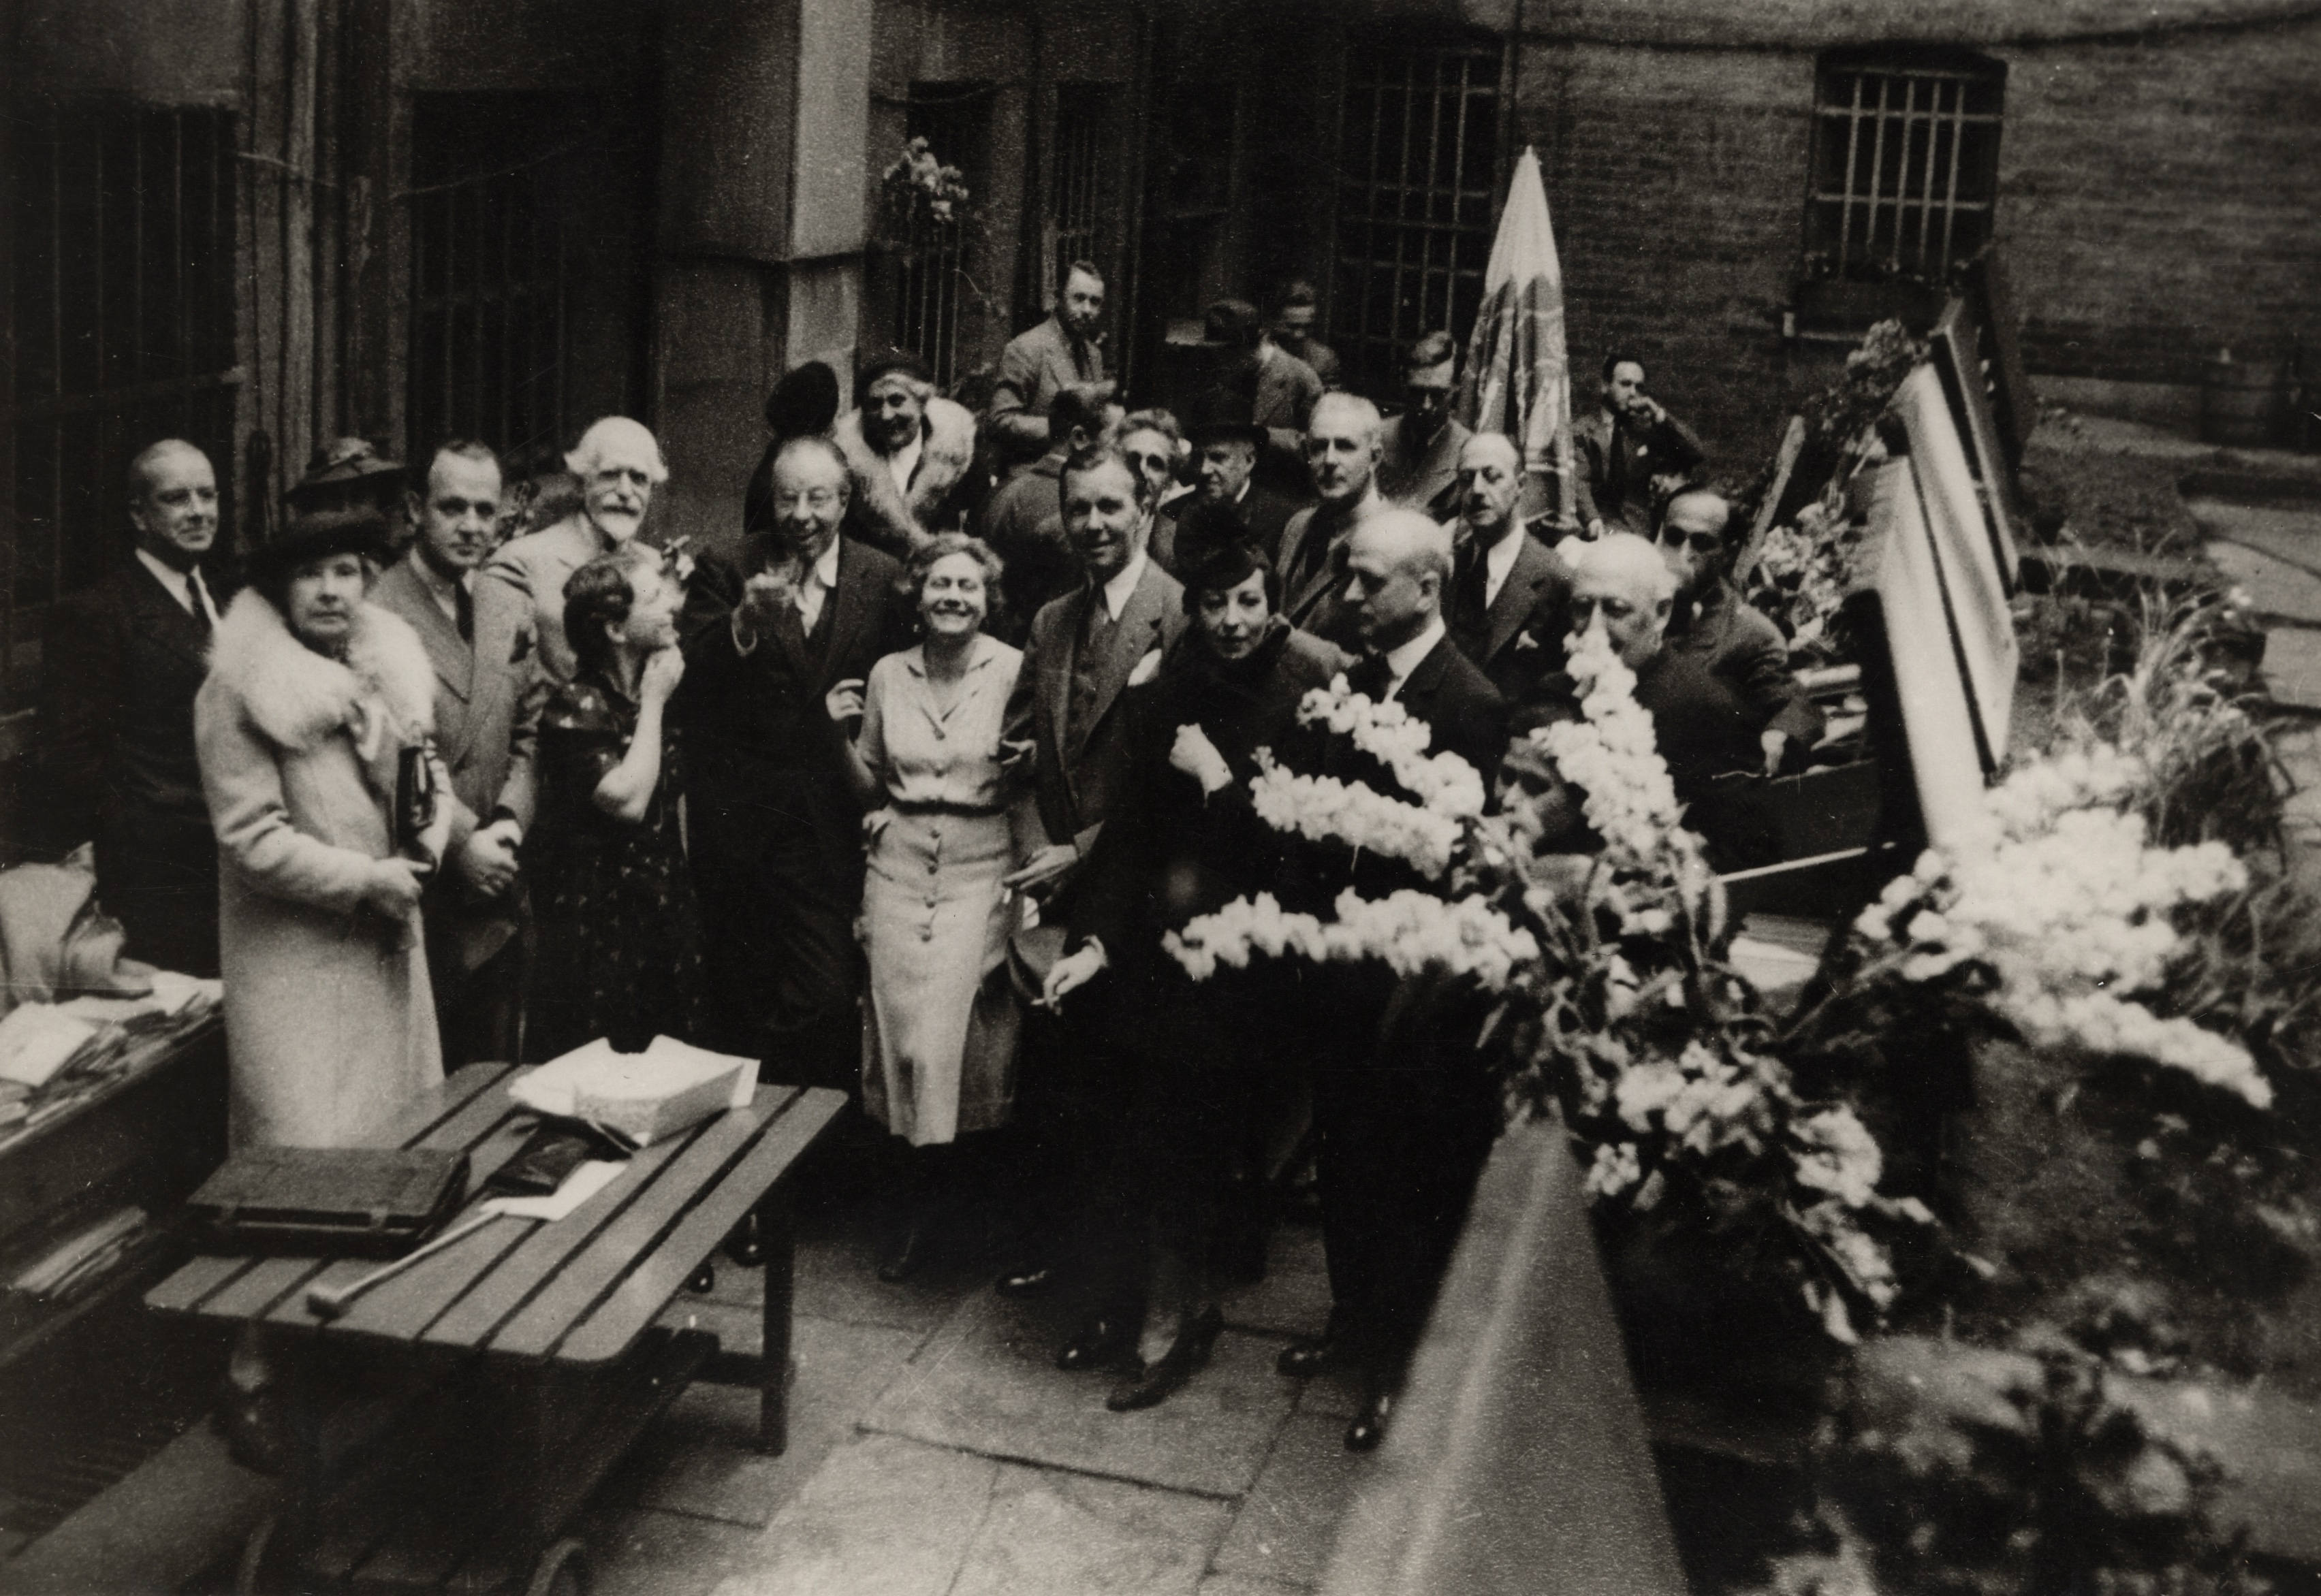 B&W photograph. L to R: Buckminster Fuller, Carol Bourne, unidentified man, Wilbur Macy Stone, Kay Steele, Christopher Morley, Frances Steloff, Glenn Hunter, unidentified woman, and Mitchell Kennerley at a party in the back garden of the Gotham Book Mart. New York, n.d.